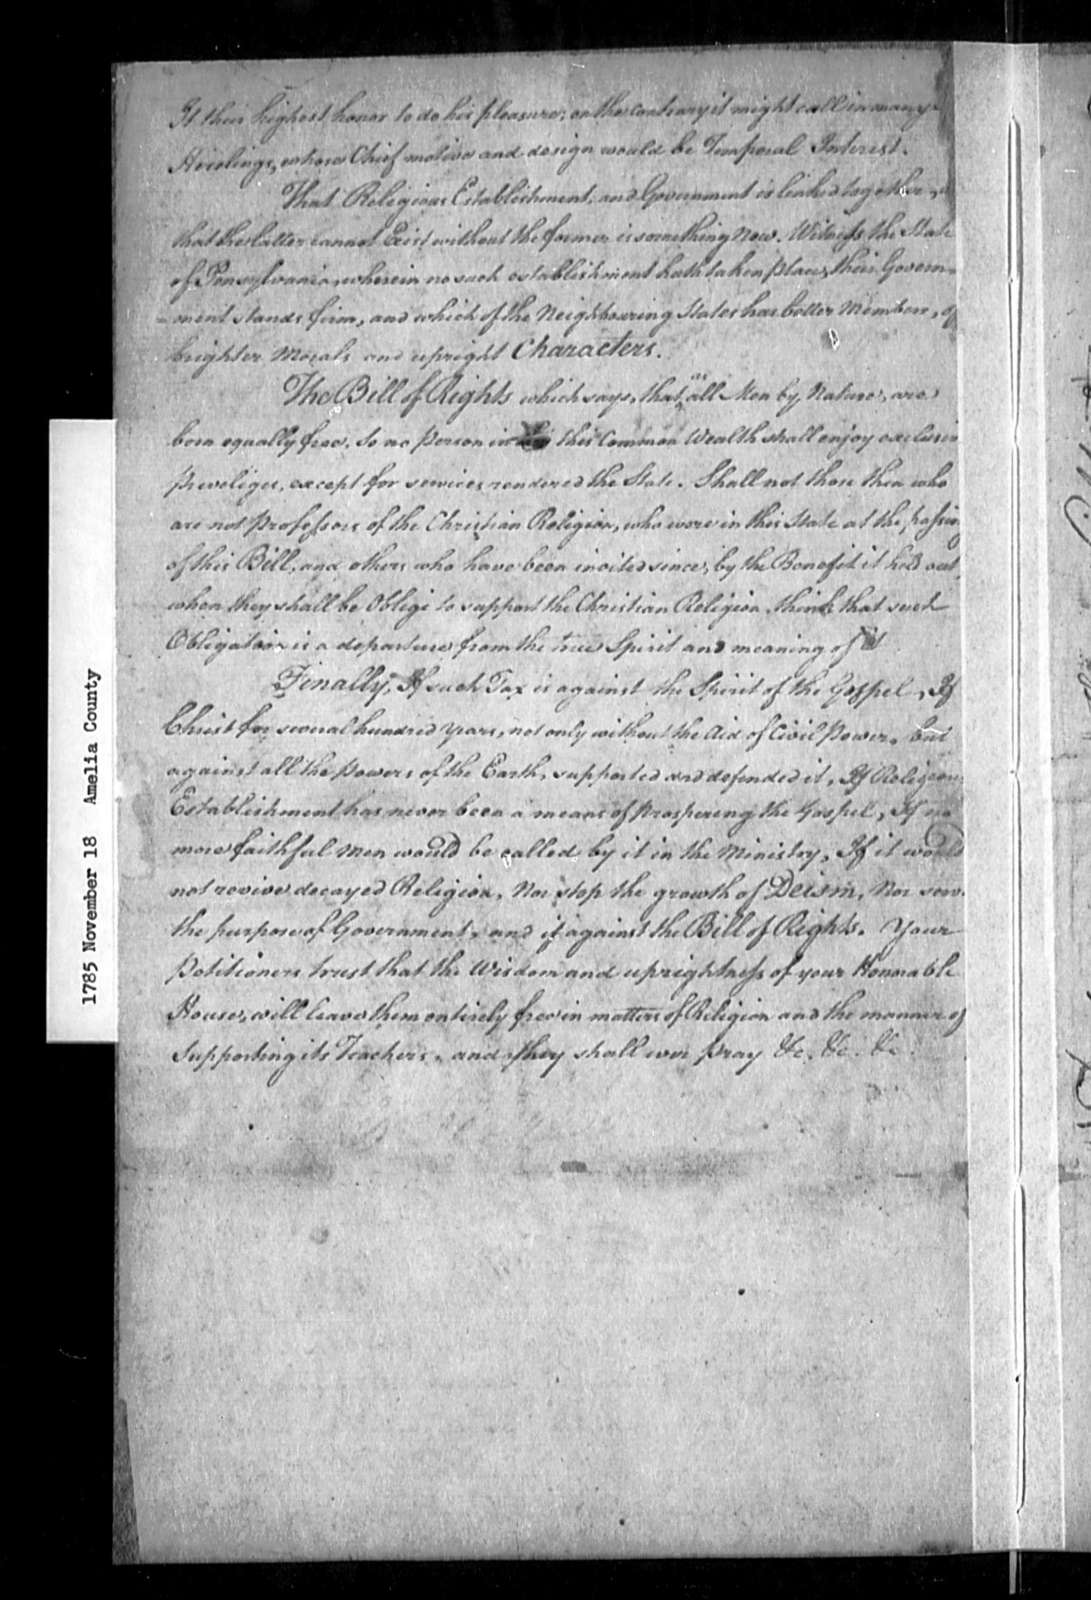 November 18 1785 Amelia Against Assessment Bill Library Of Congress Public Domain Image Real property public extract and billing/payment records. library of congress getarchive